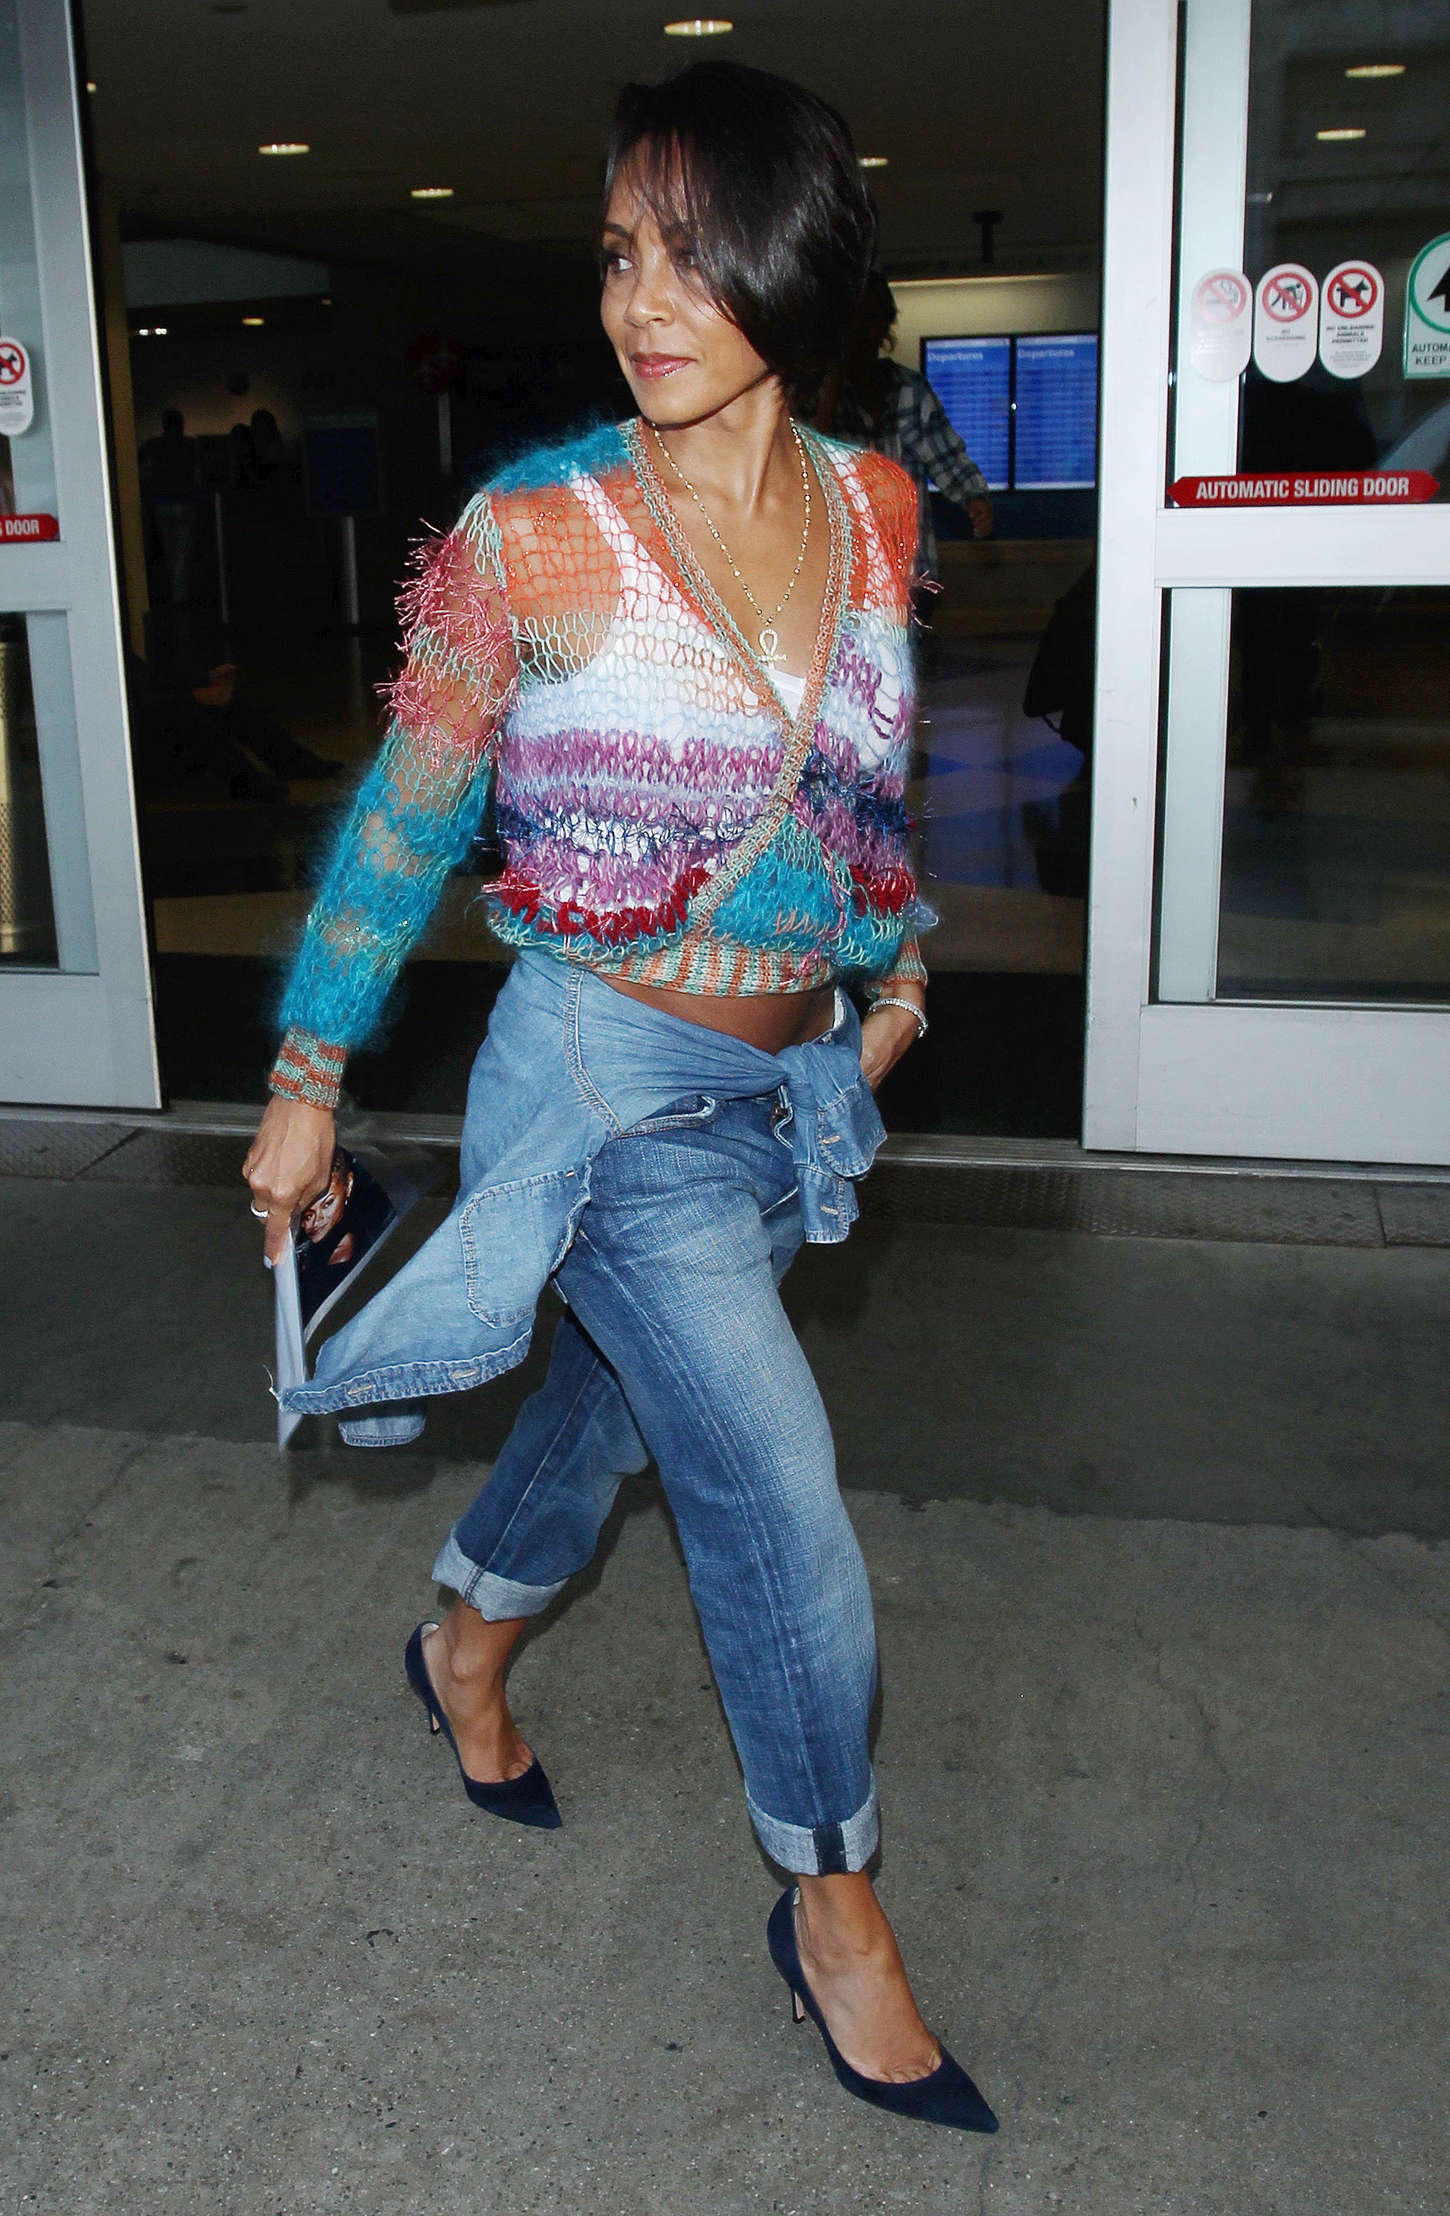 Jada Pinkett Smith LAX airport in Los Angeles